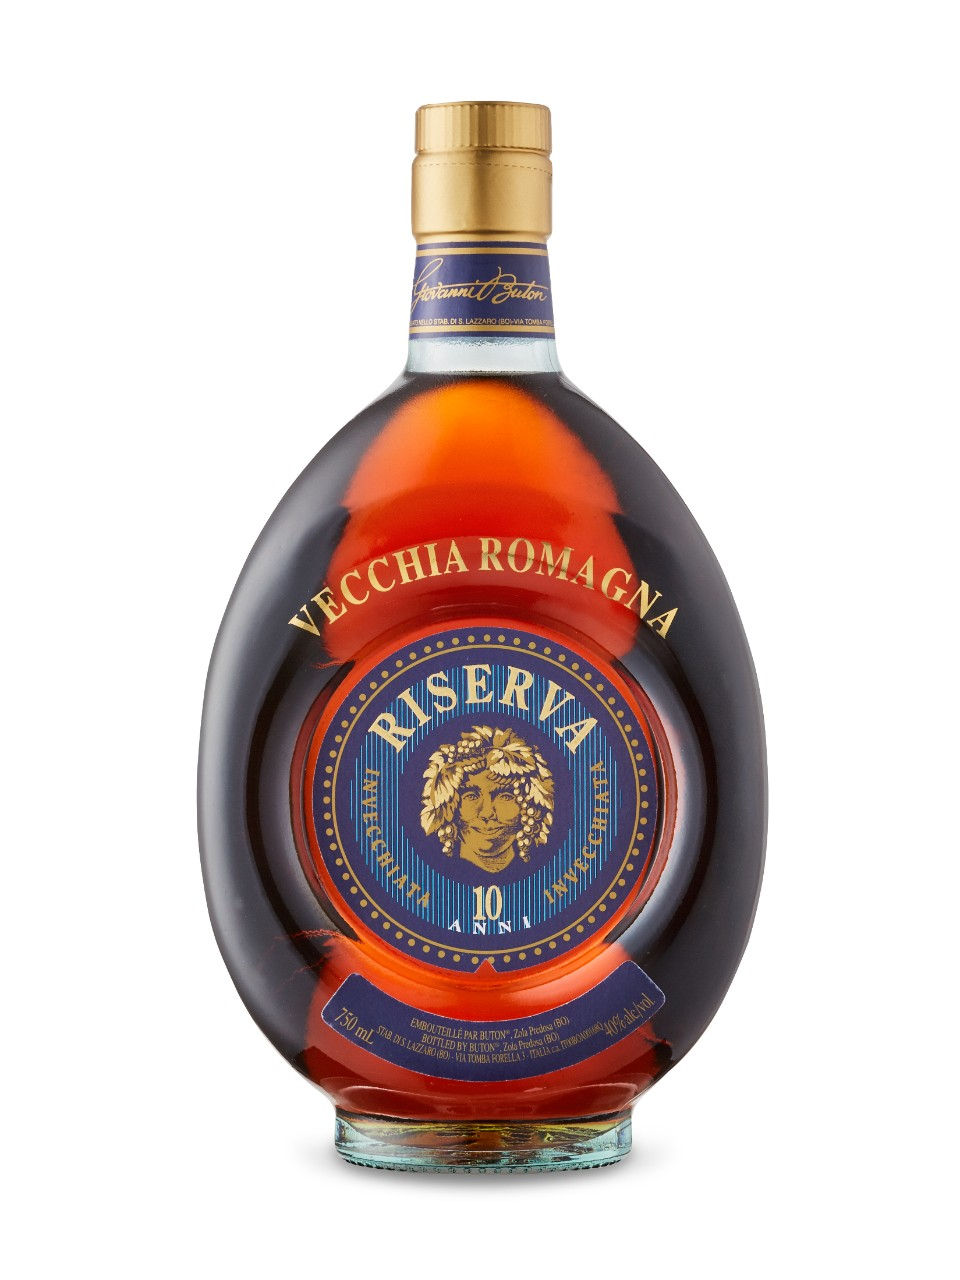 Image for Buton Vecchia Romagna 10 Year Old Brandy from LCBO